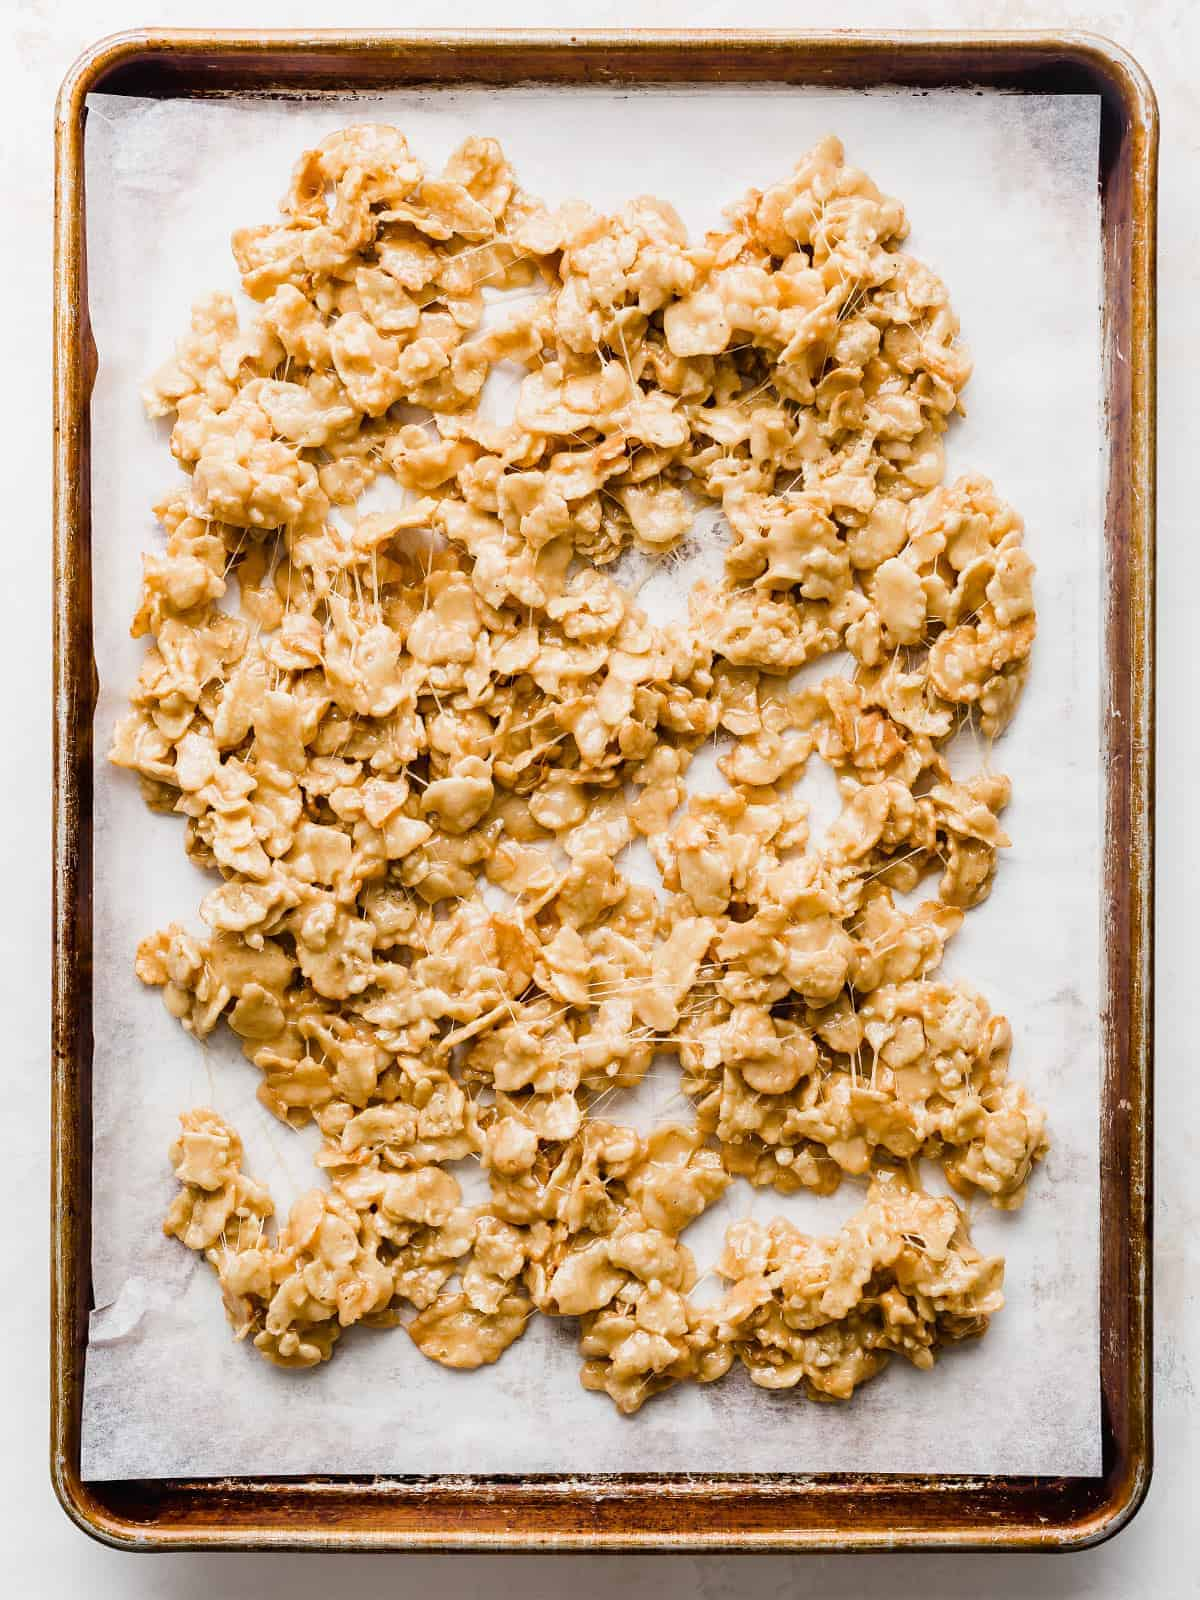 Marshmallowy covered Special K Cereal spread out on a baking sheet.